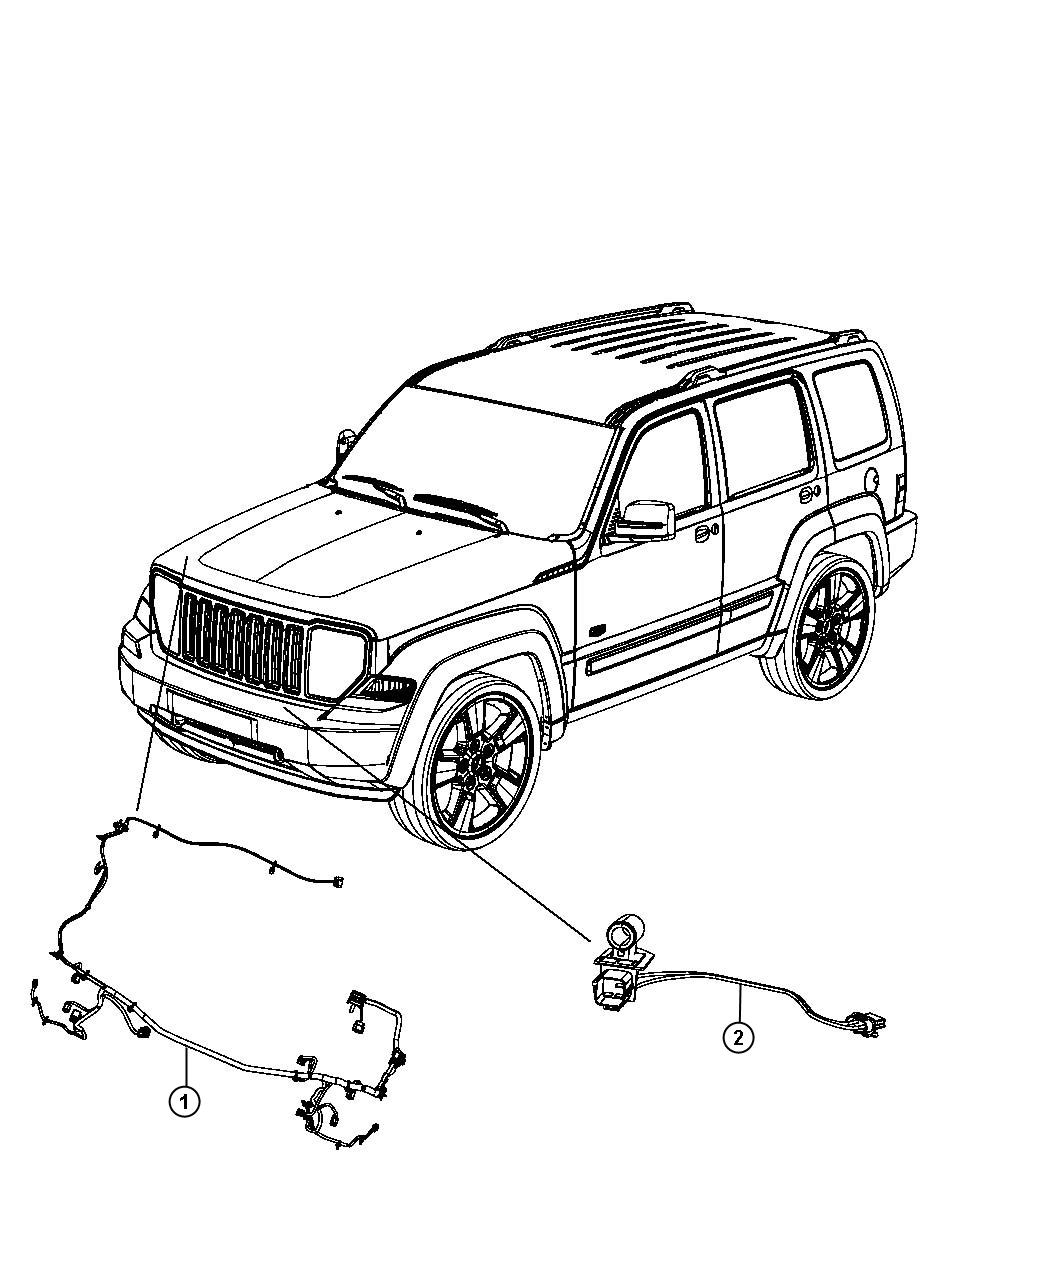 Jeep Liberty Wiring Fan Motor Contains Resistor